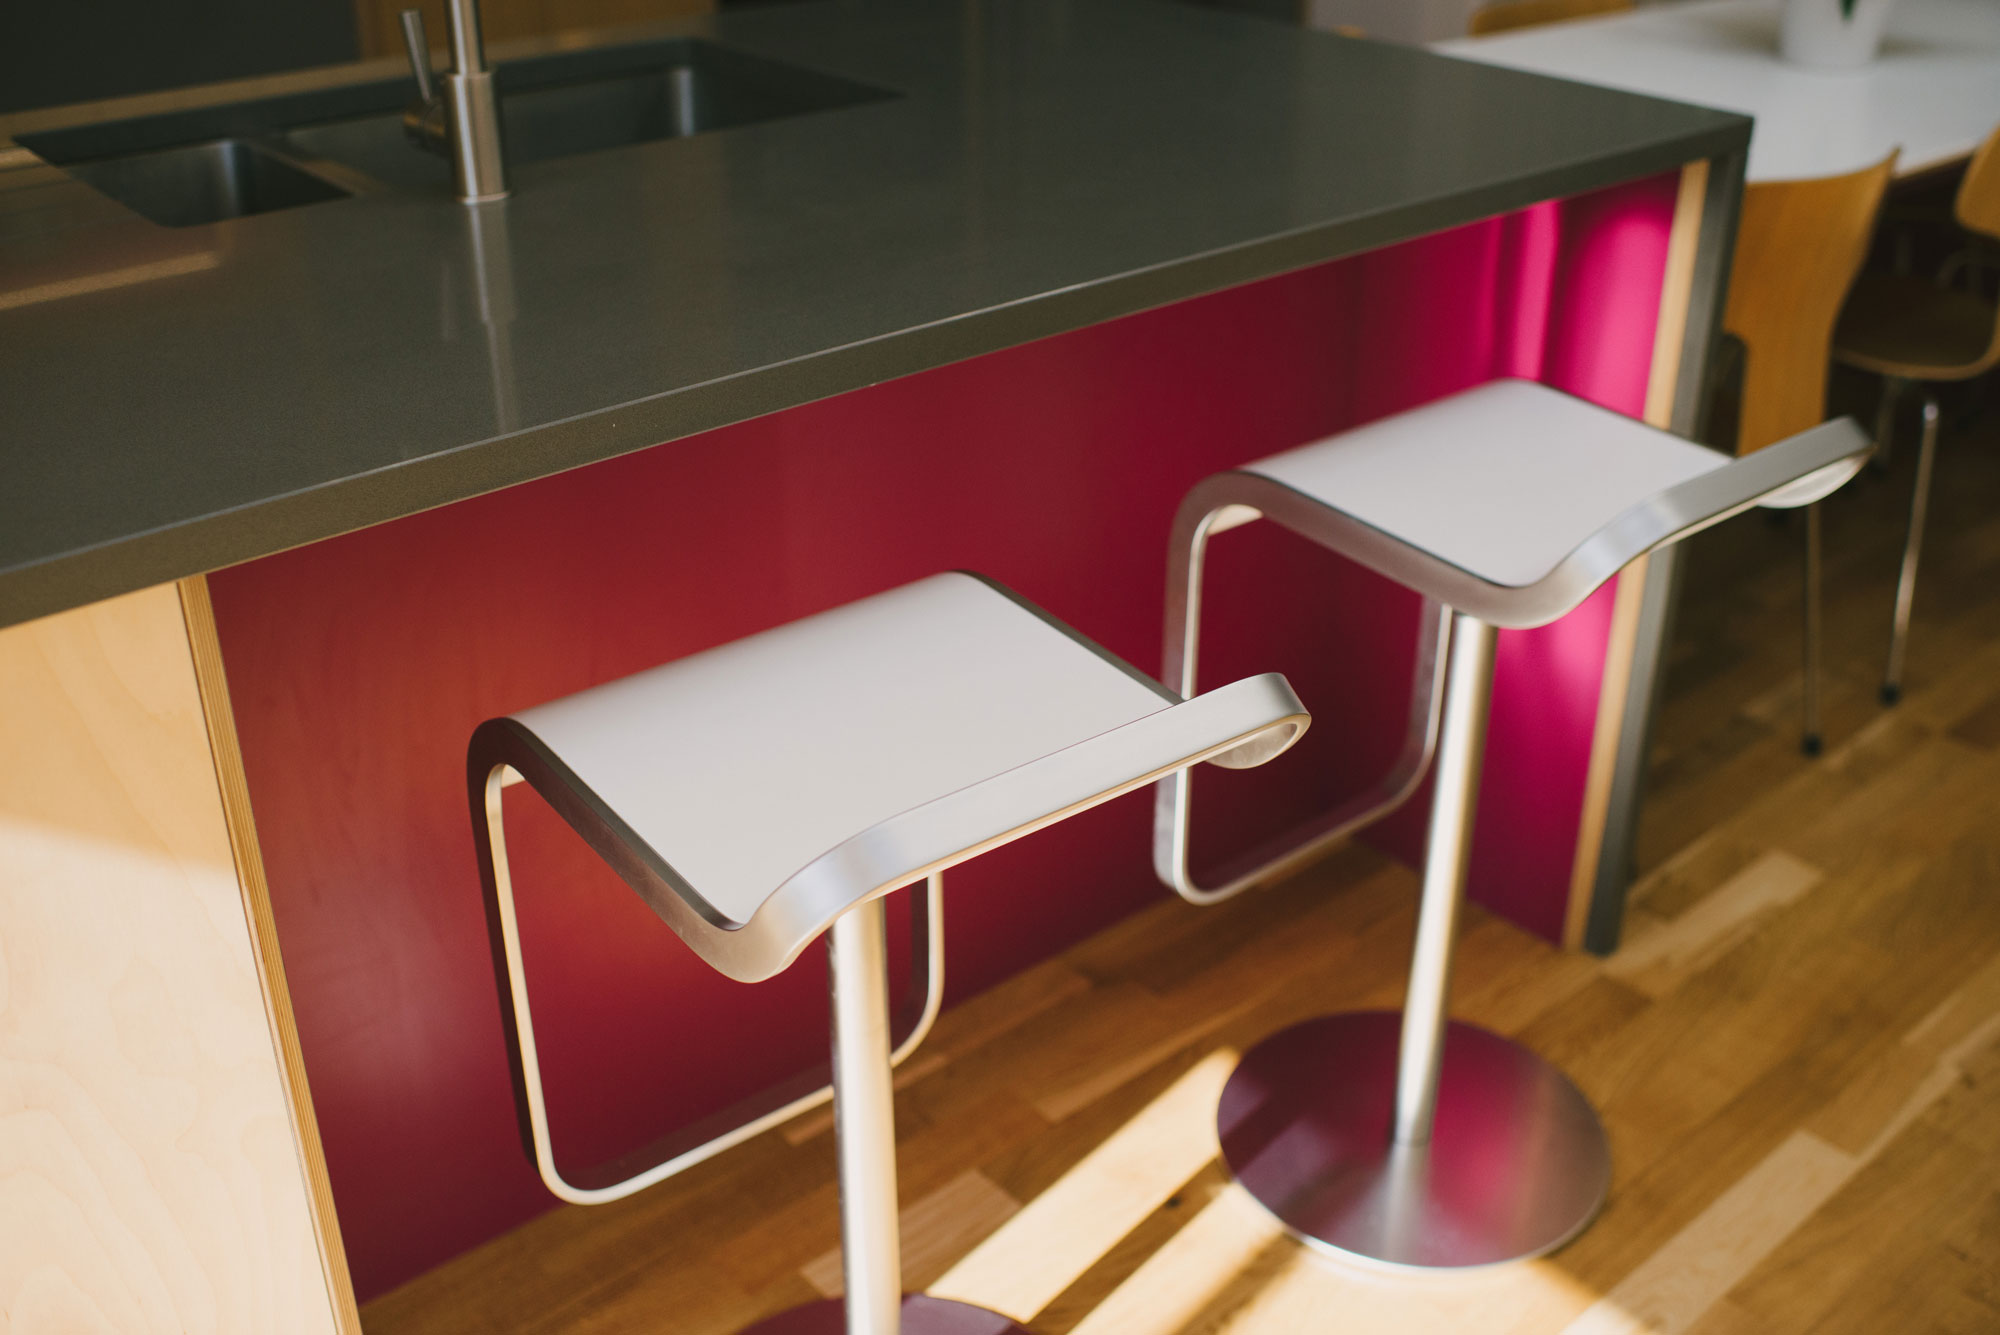 Breakfast bar stools at pink and grey plywood kitchen island unit